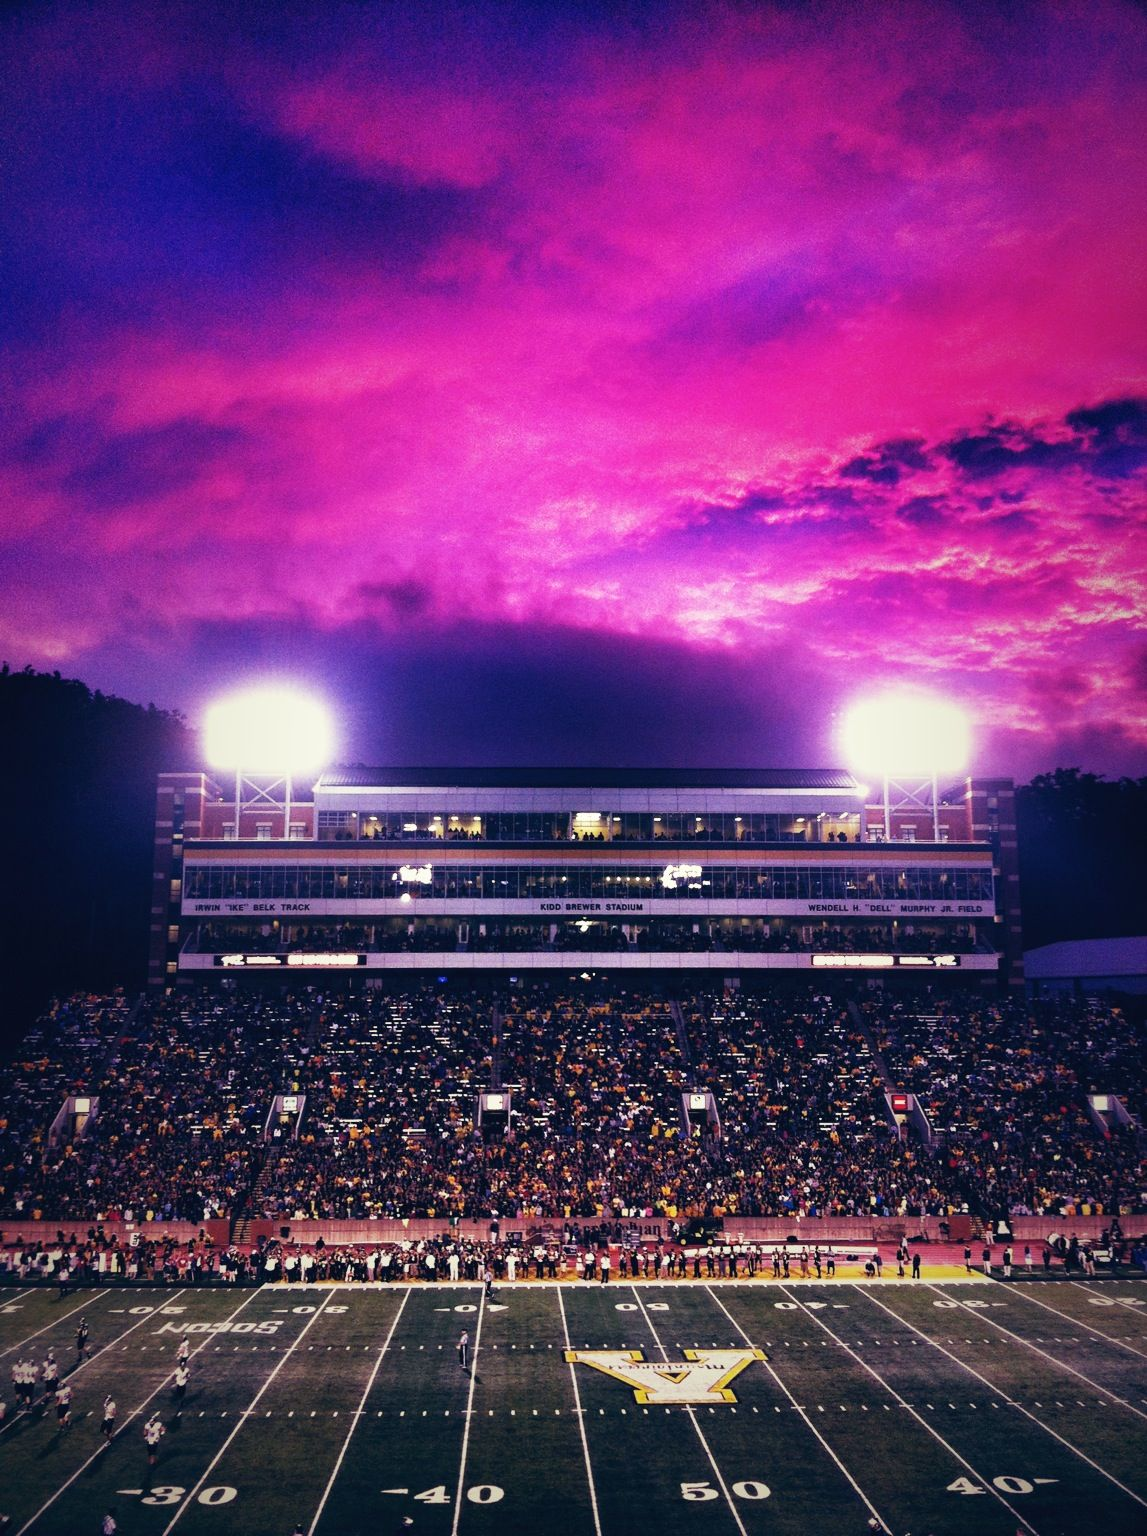 Kidd Brewer Stadium Asu Boone Nc Appalachian State University Boone Nc Oh The Places You Ll Go